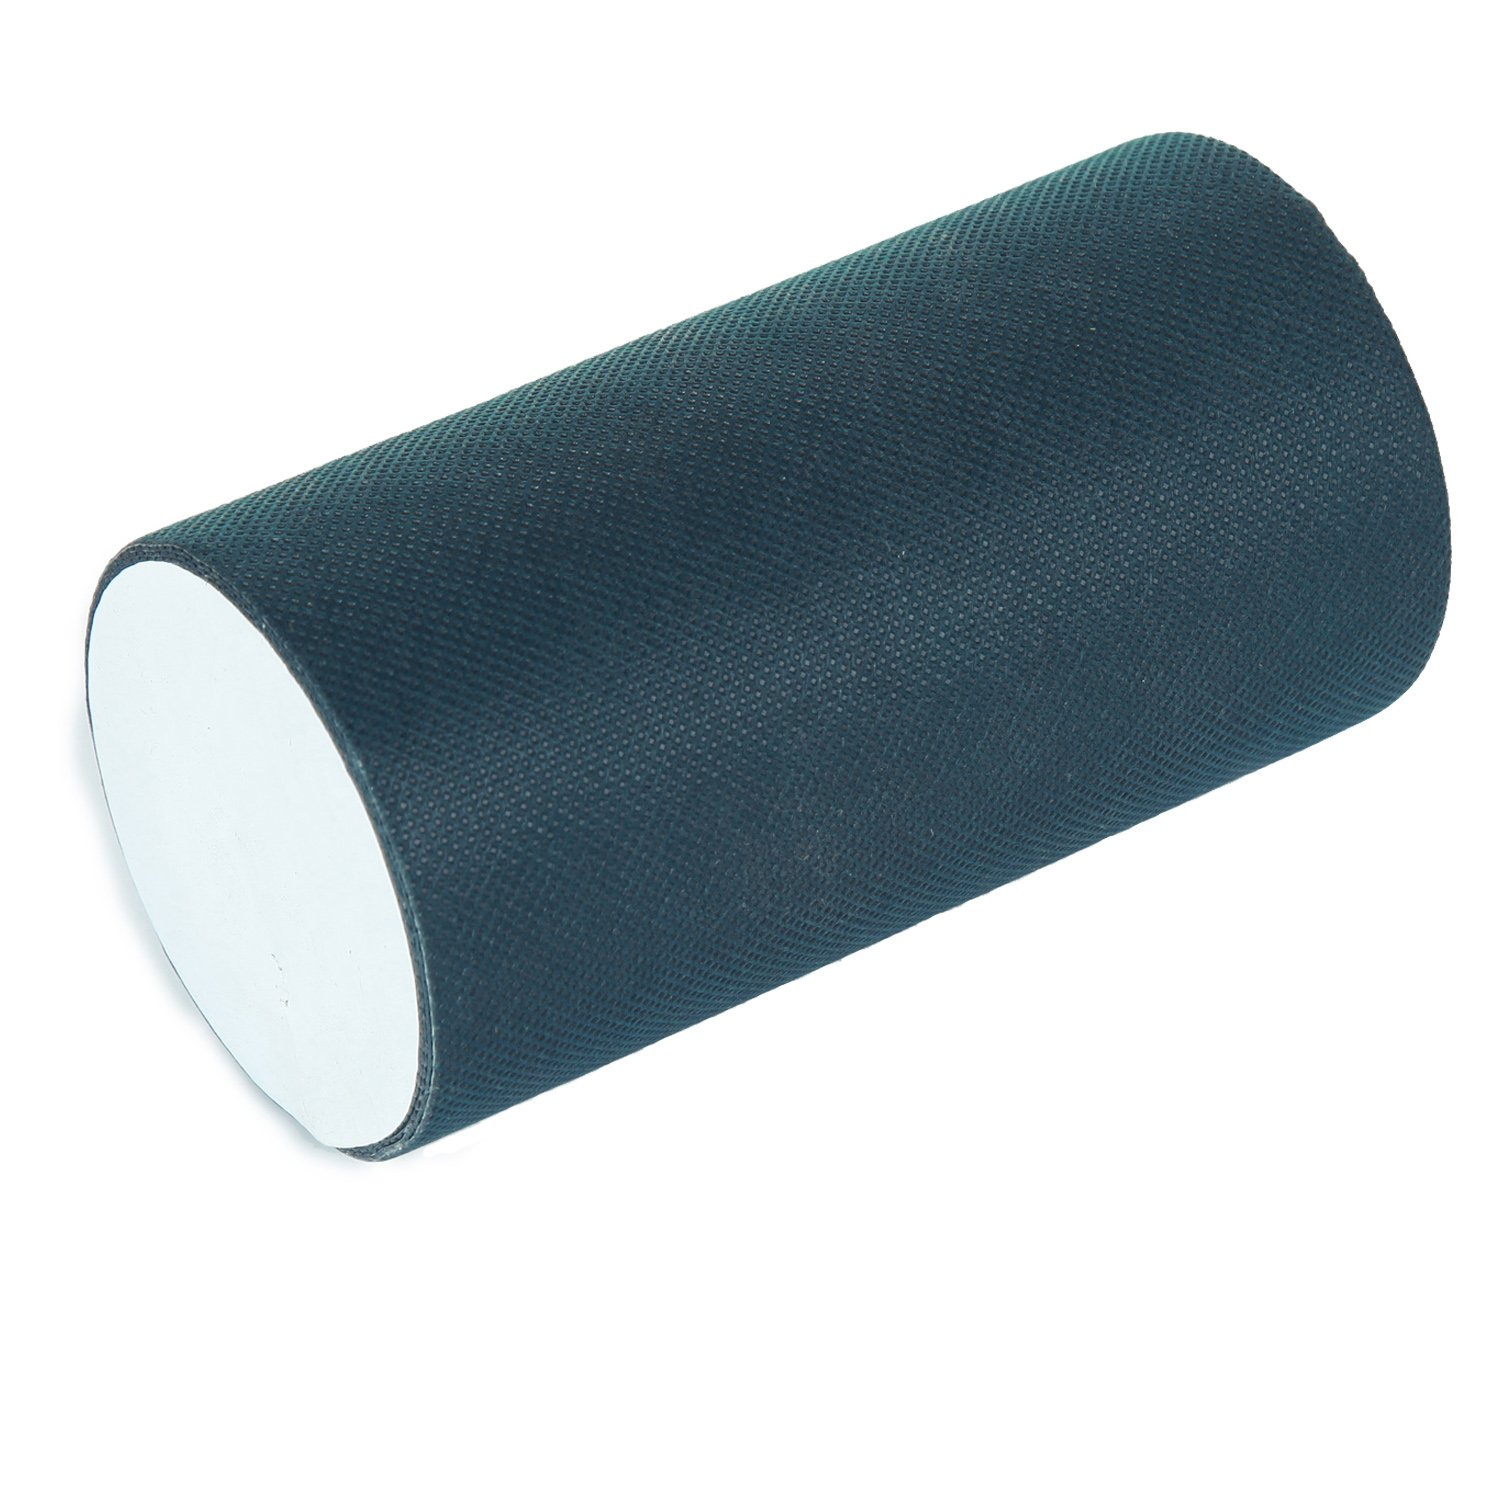 QYH 6in x 49.2ft Artificial Synthetic Turf Self Adhesive Seam Tape for Jointing Lawn Mat Connecting Fake Grass Carpet(15M X 15CM), 6 in x 50, Dark Green